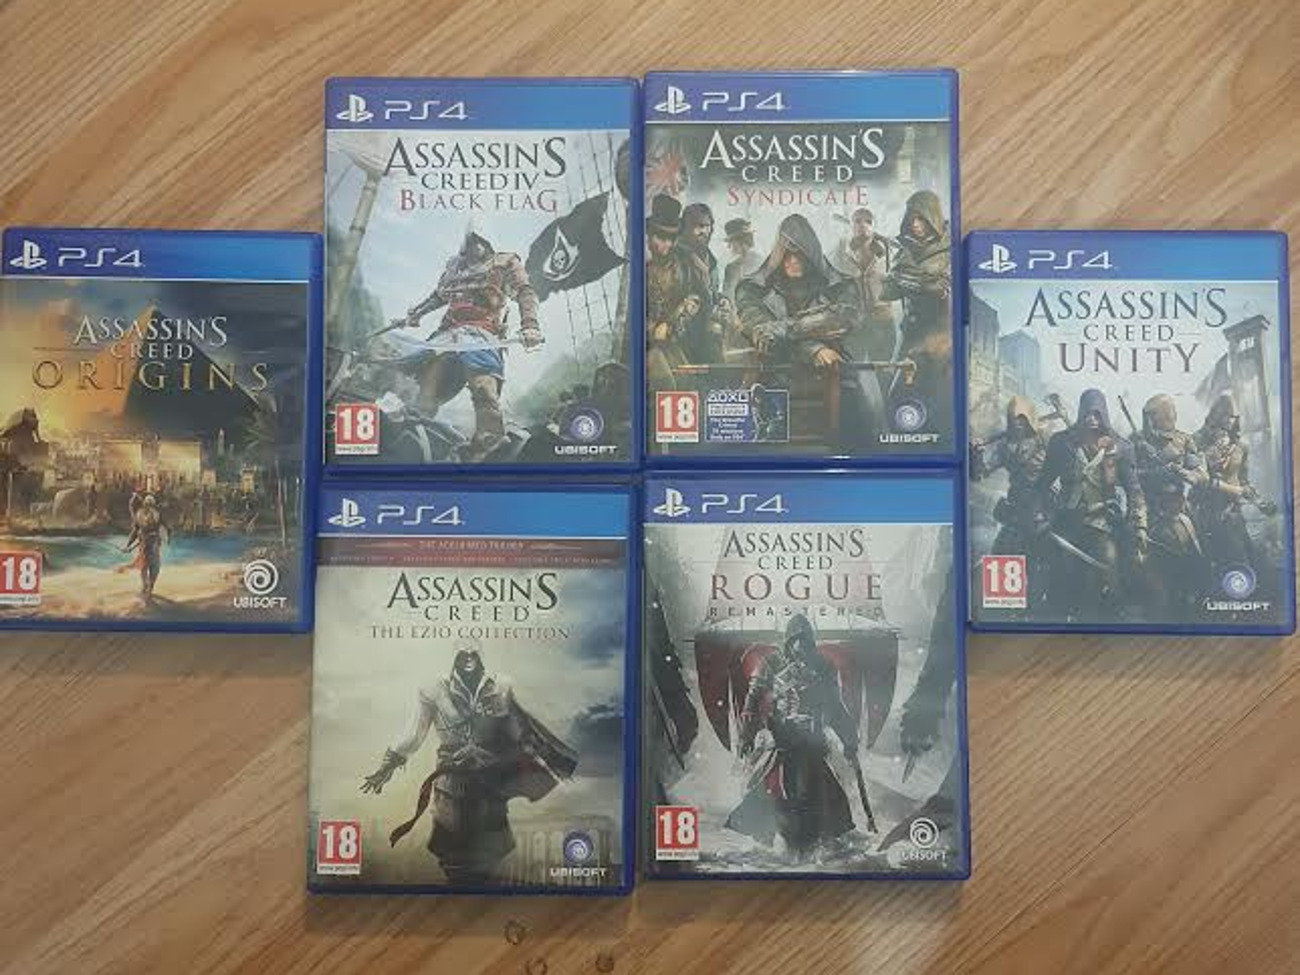 Rent Assassins Creed Collection For Ps4 In London Rent For 18 00